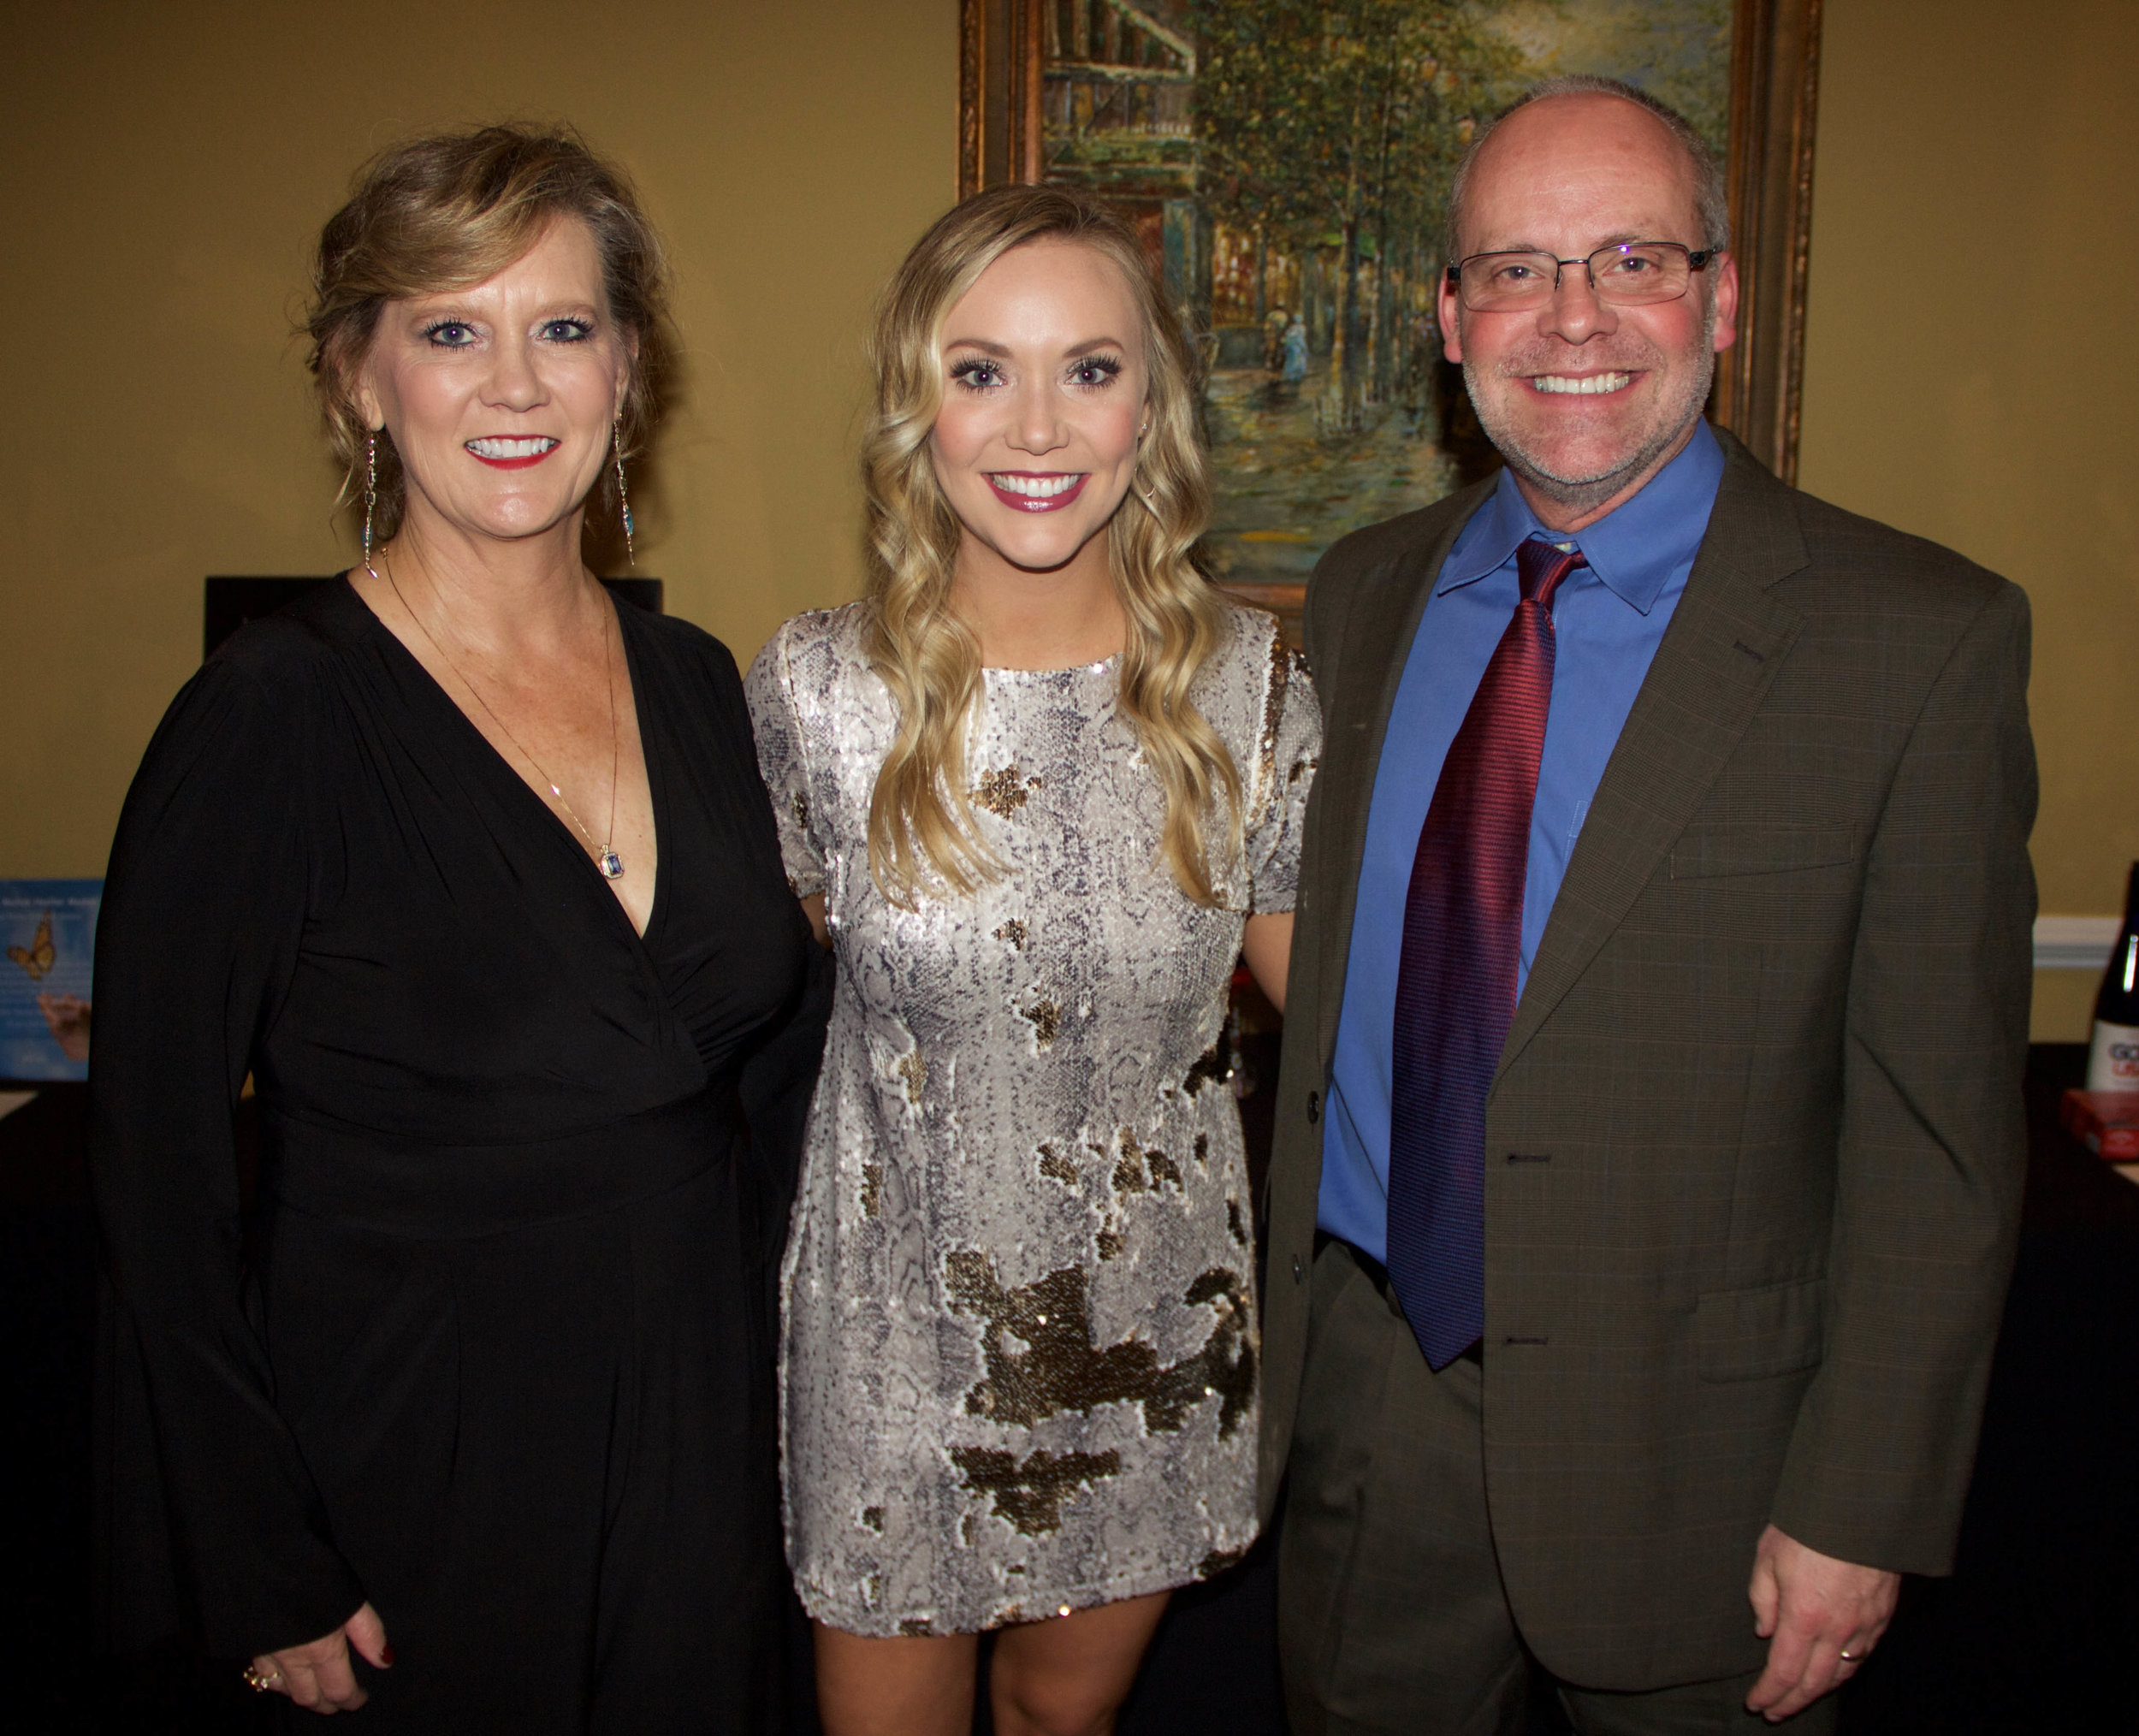 Carla Wren, Kelsey Kuhn and Dr. Mark Wren